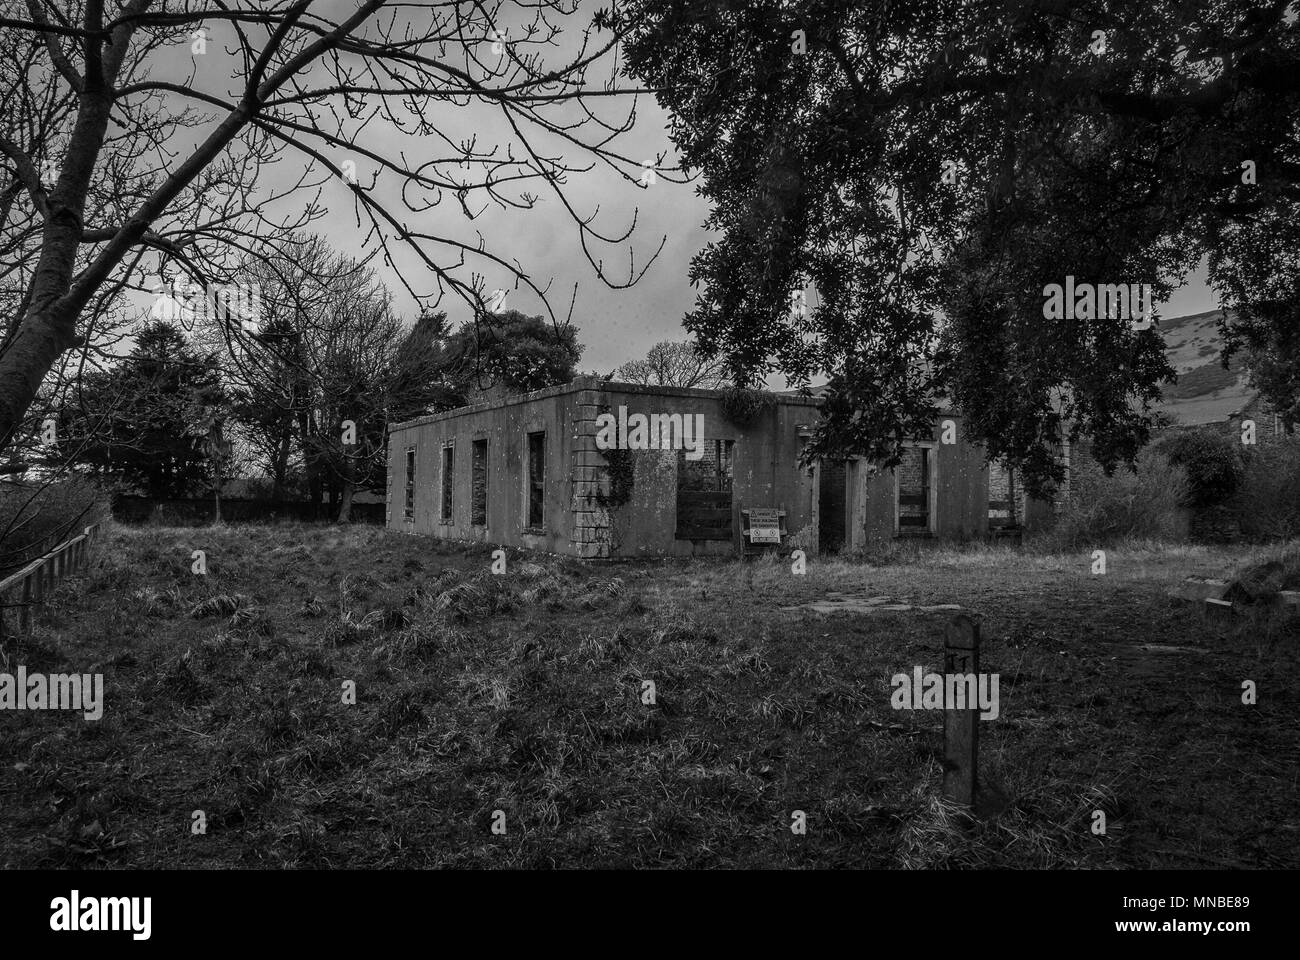 Abandonded buildings in the ghost village of Tyneham in Dorset, UK - Stock Image